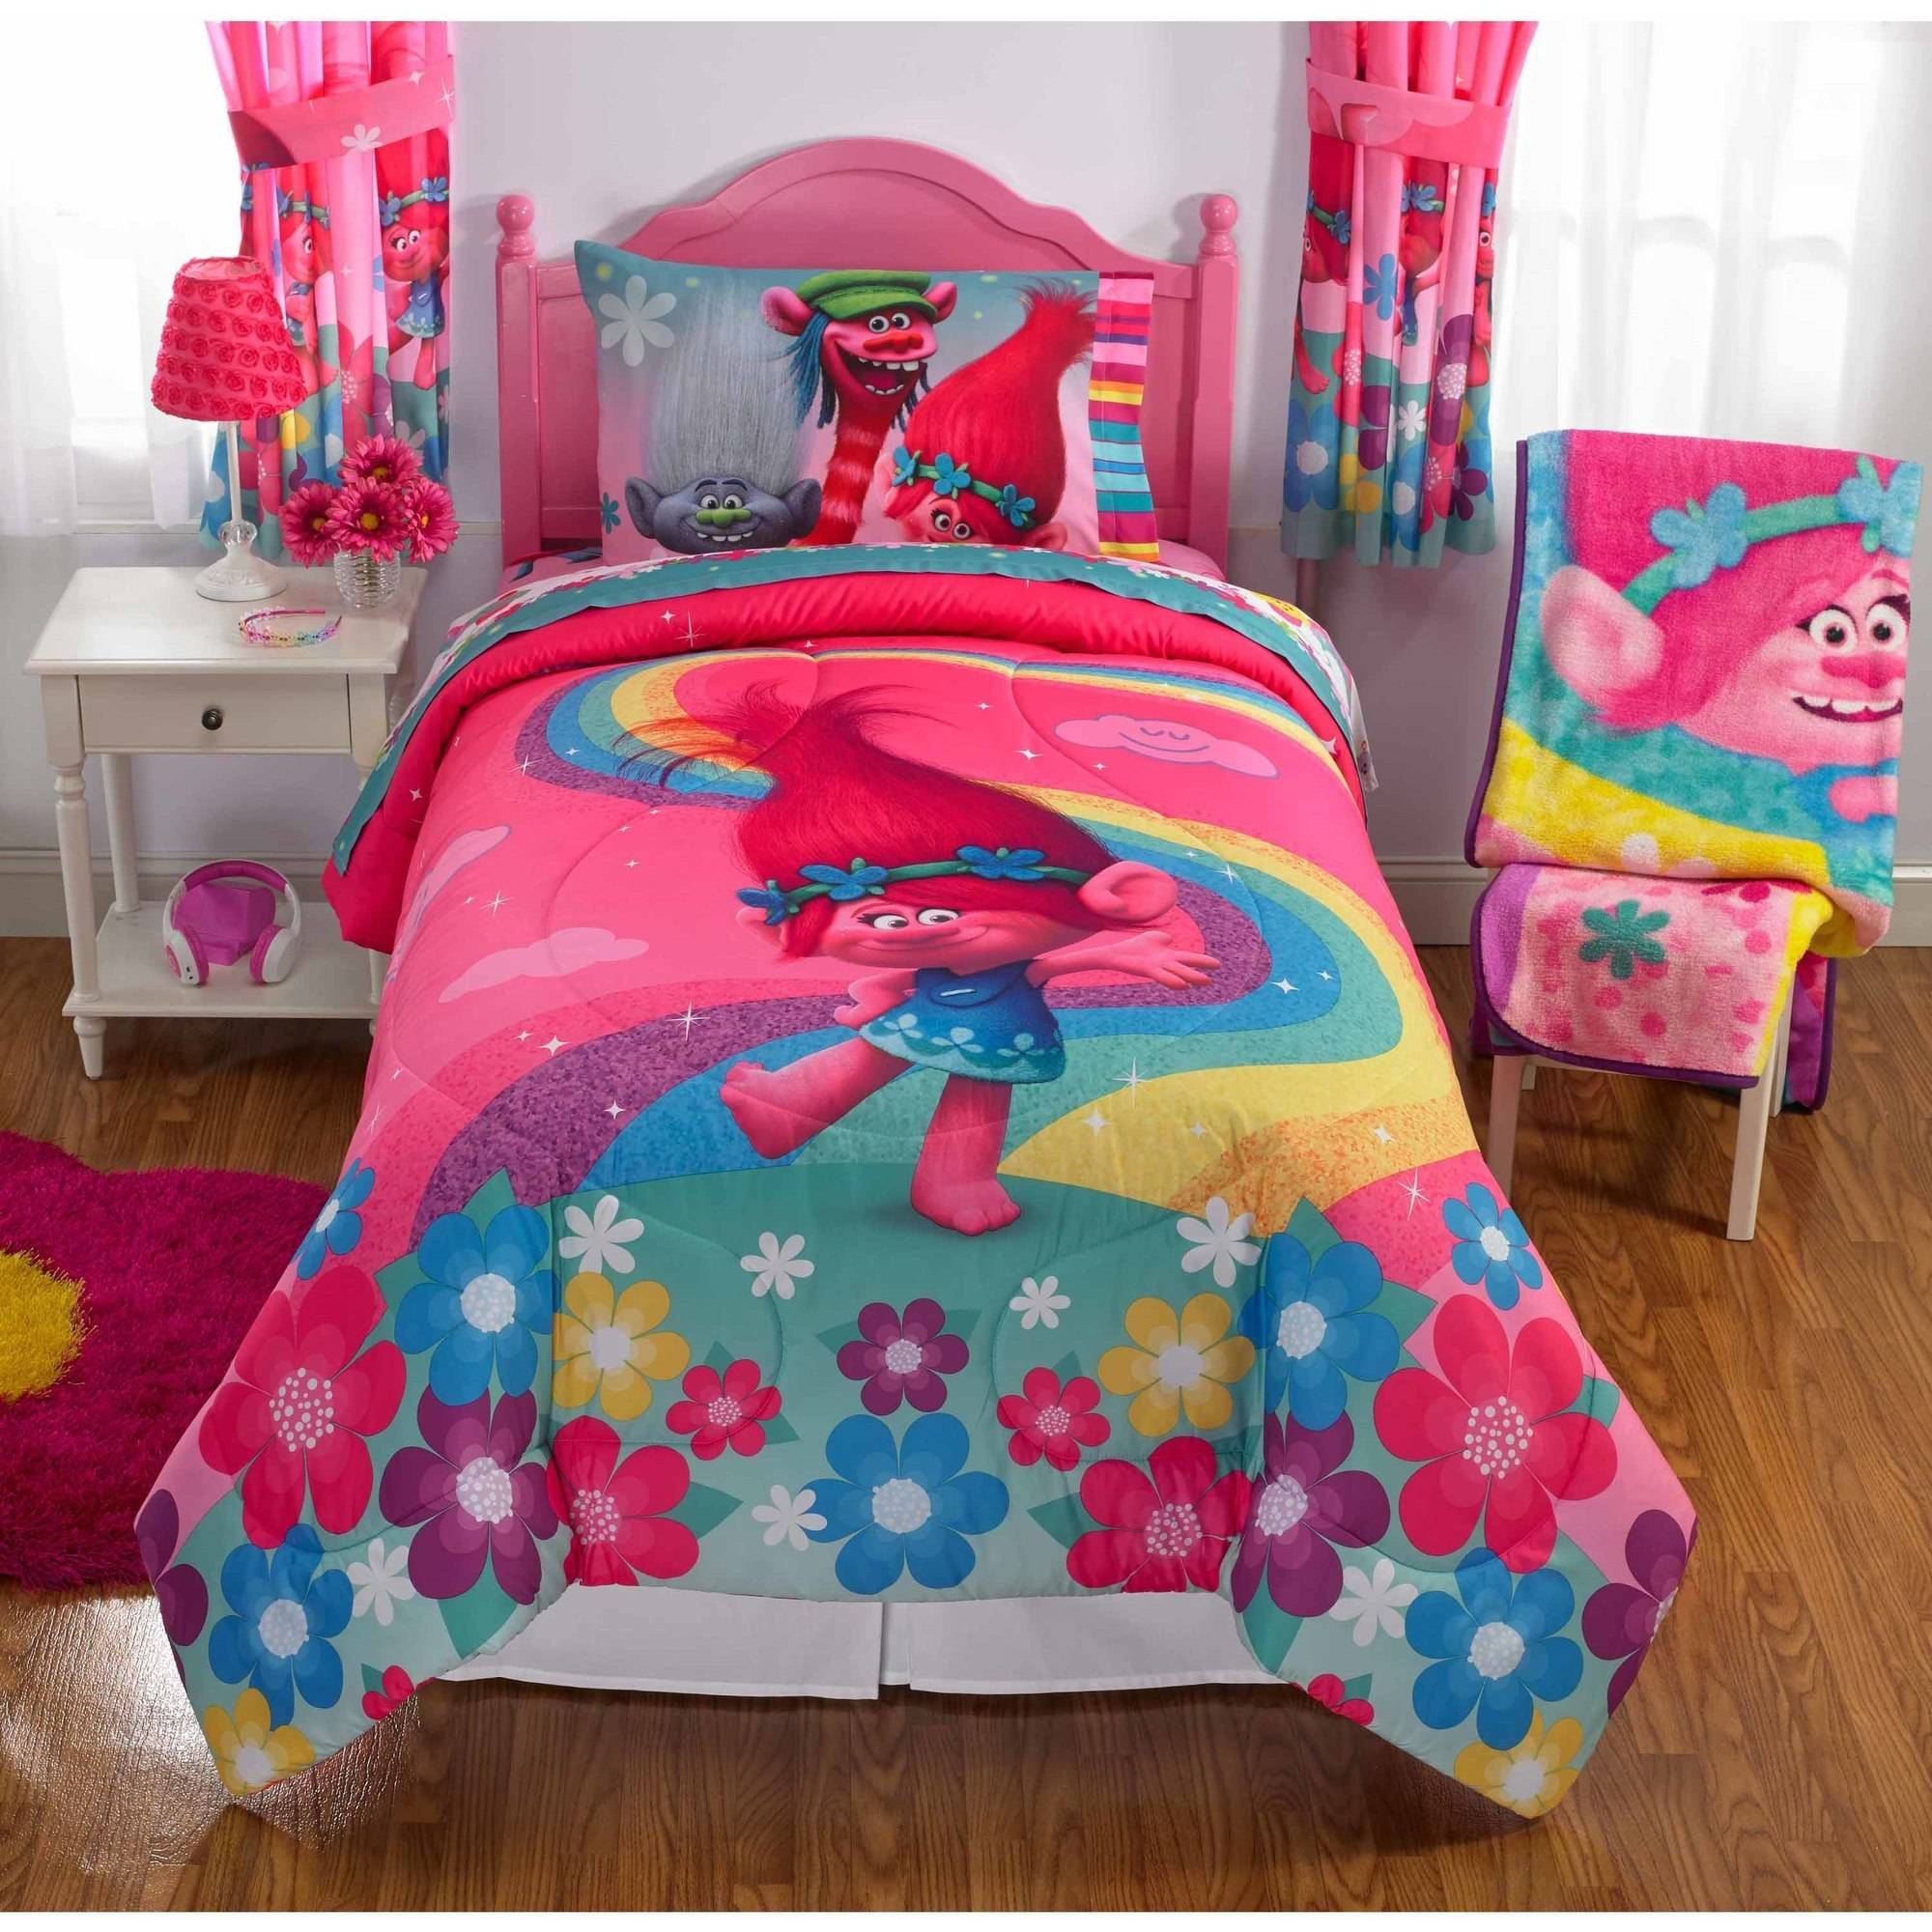 Dreamsworks Trolls Show Me A Smile Bed in Bag Bedding Set